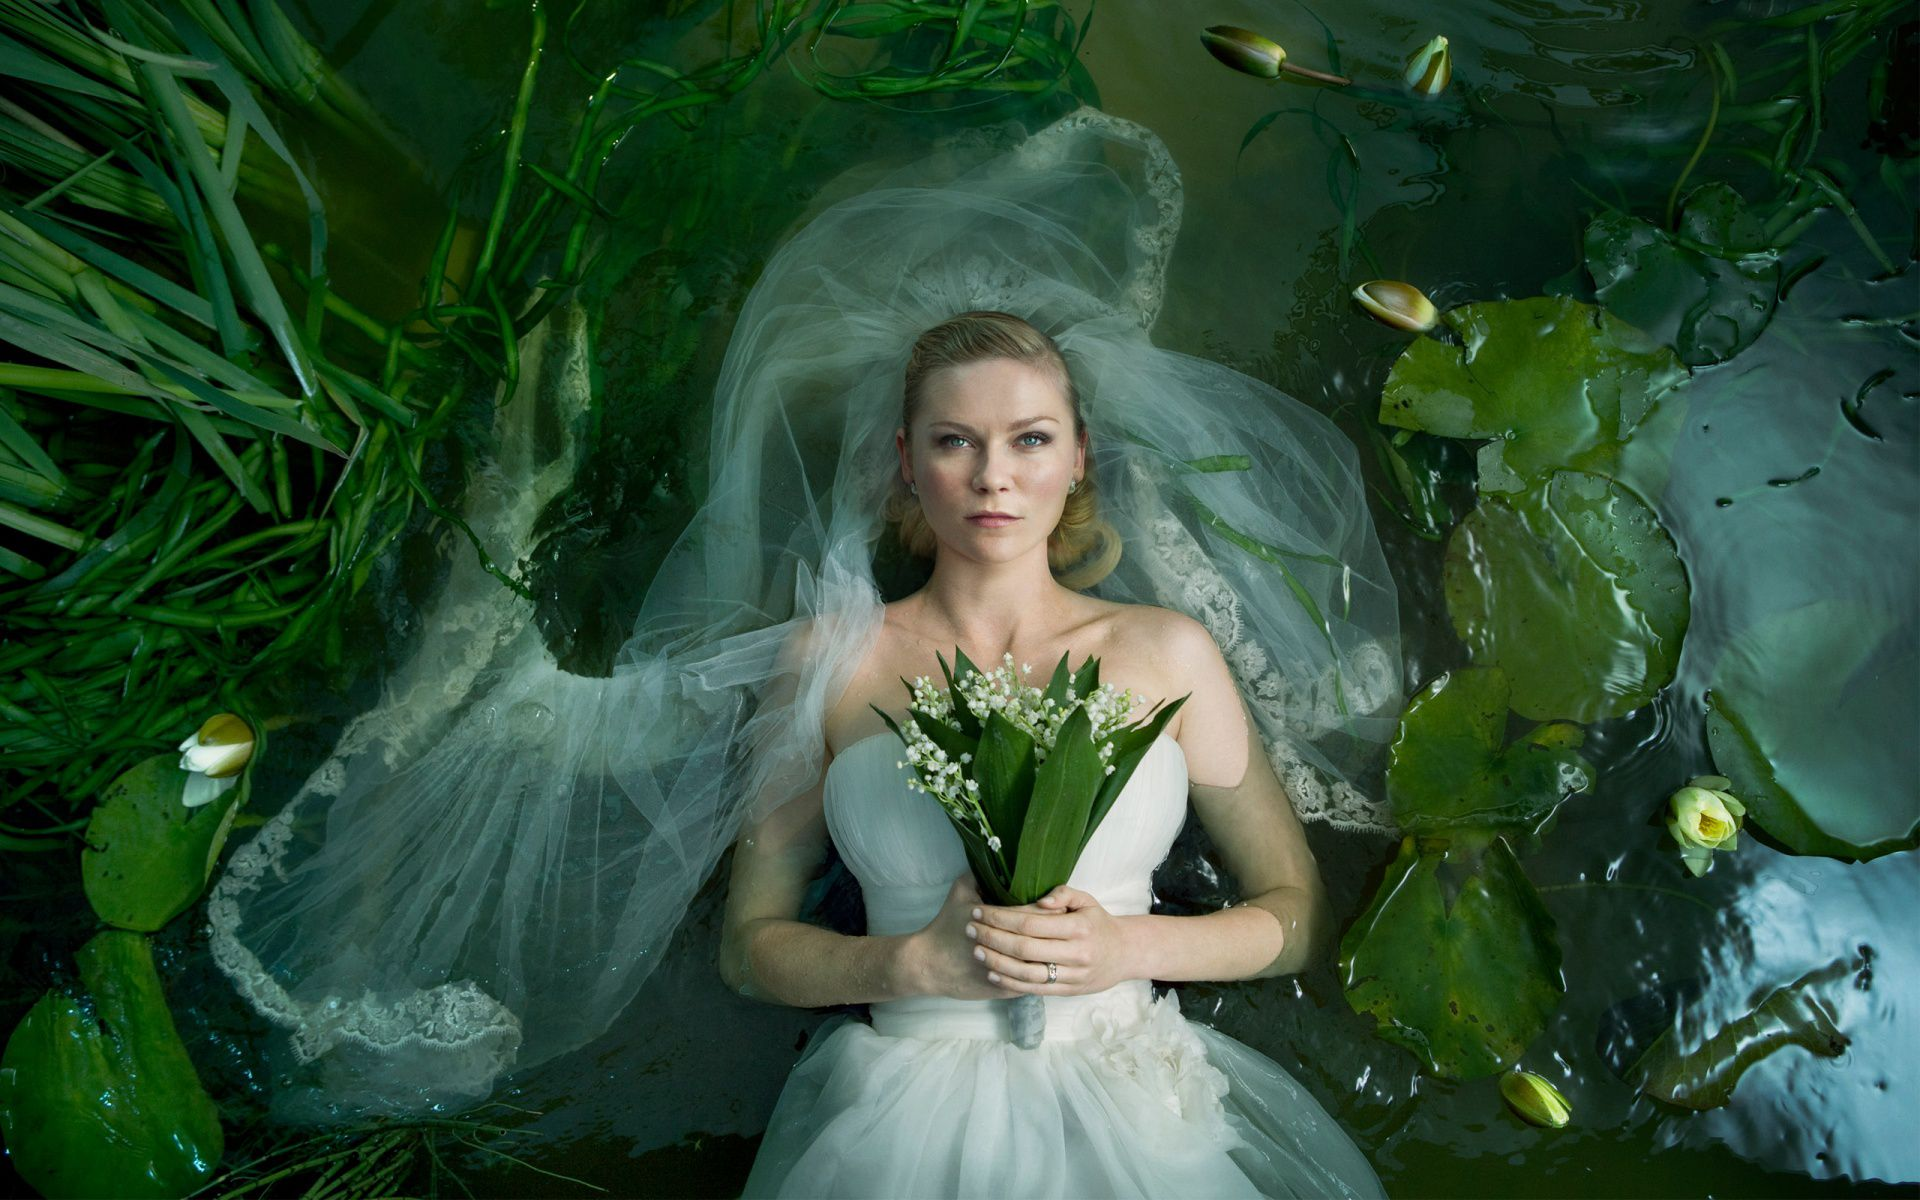 An image from Melancholia